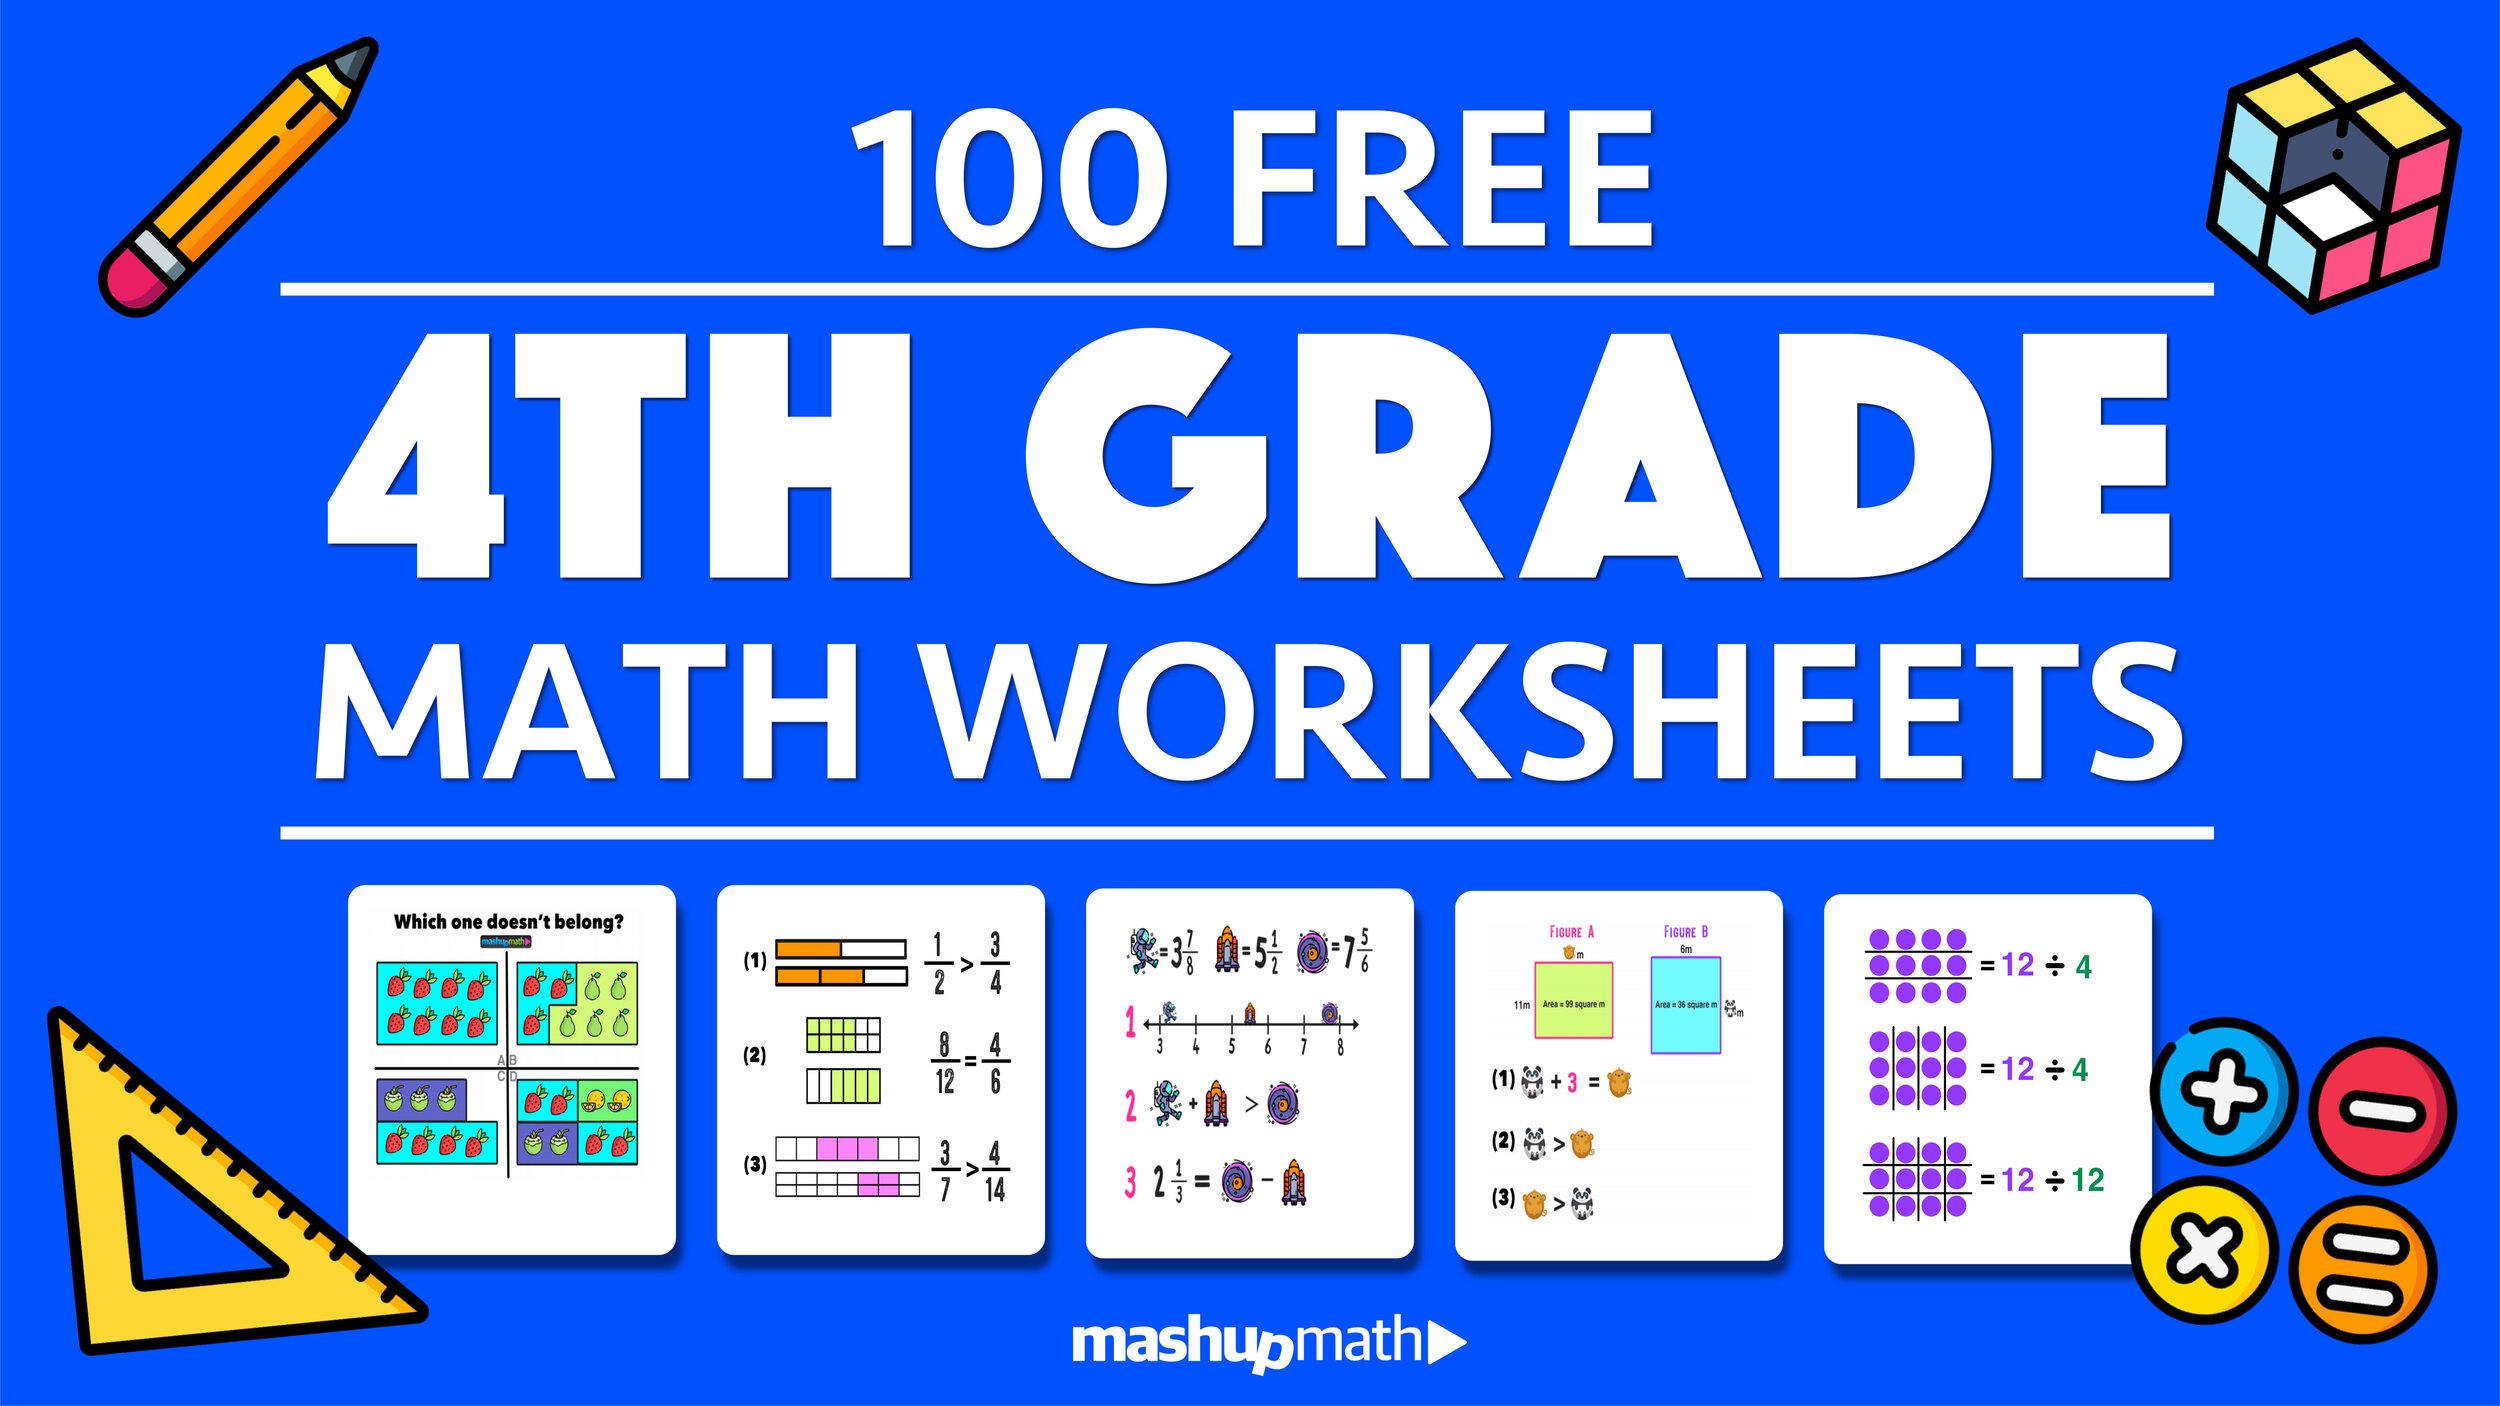 small resolution of 100 Free 4th Grade Math Worksheets with Answers — Mashup Math